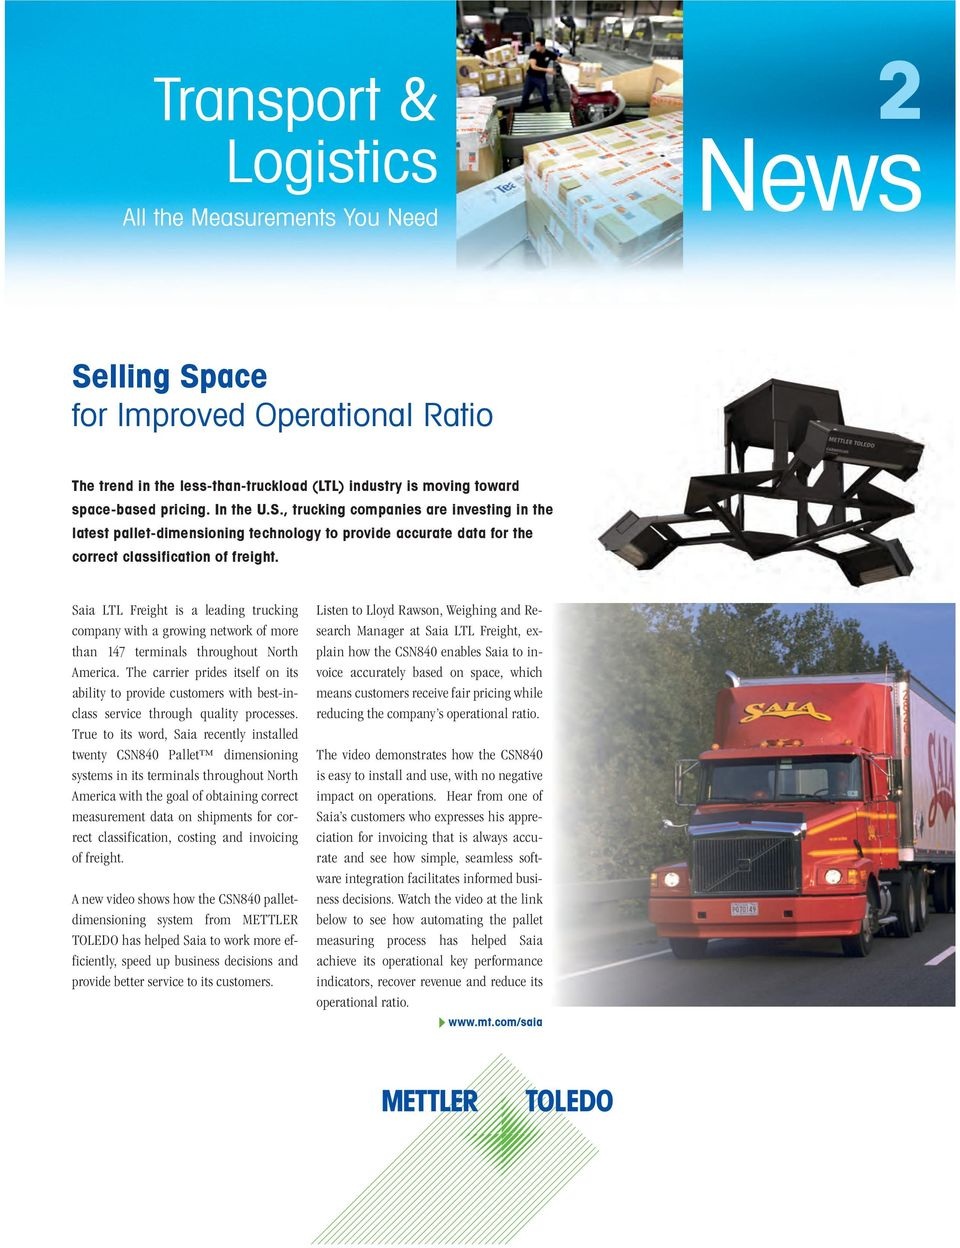 News  Transport & Logistics  Selling Space for Improved Operational